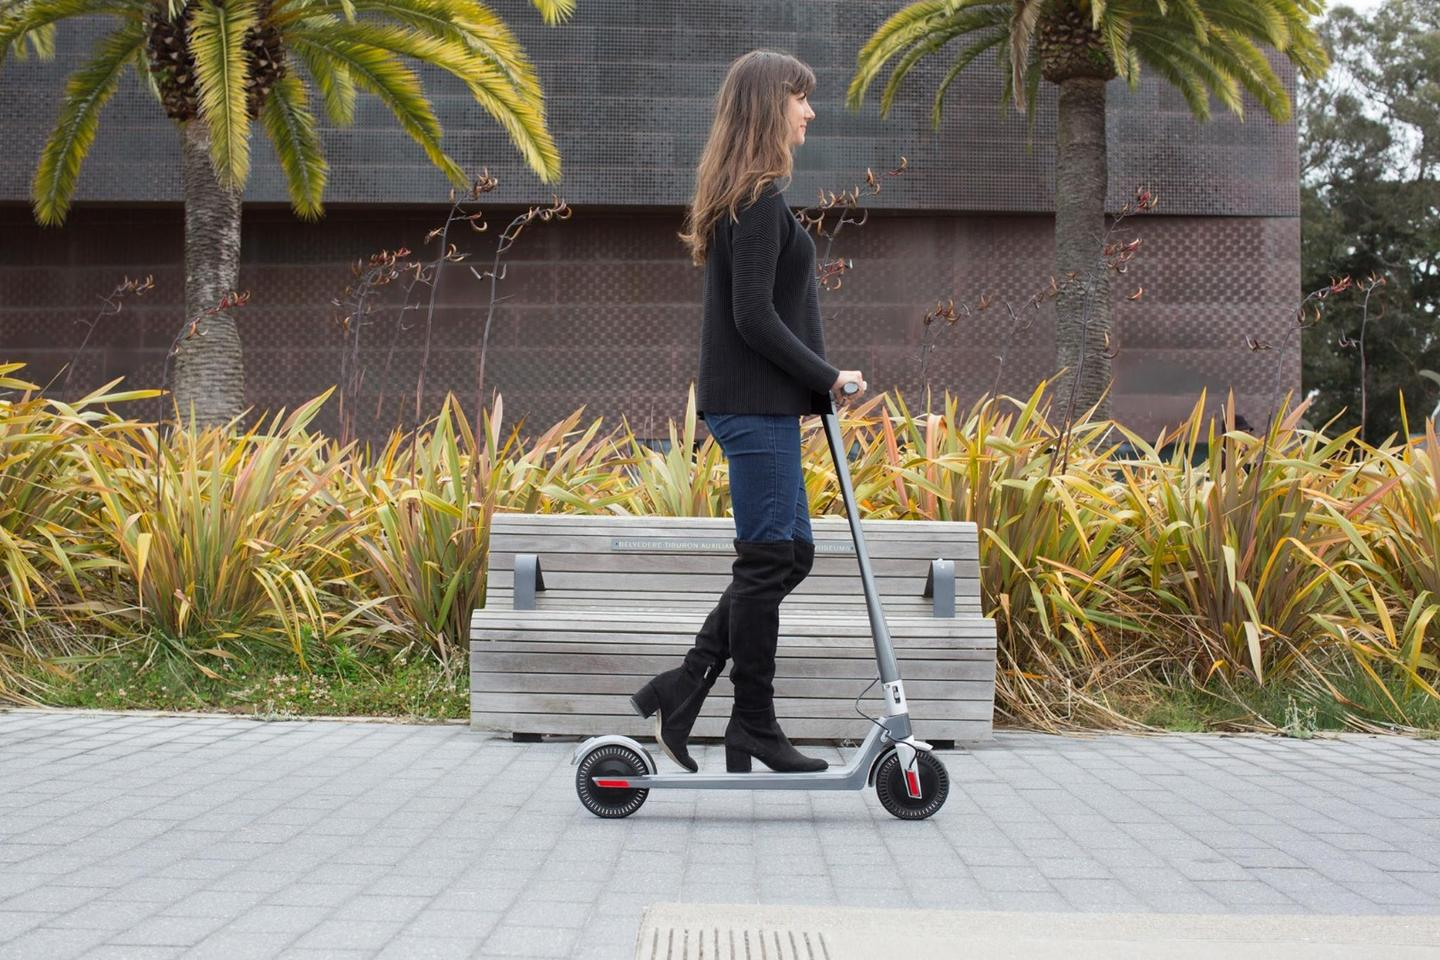 The UnagiScooter comes with either a 250 W front wheel motor or a dual motor setup with 200 W at the front and 250 W to the rear